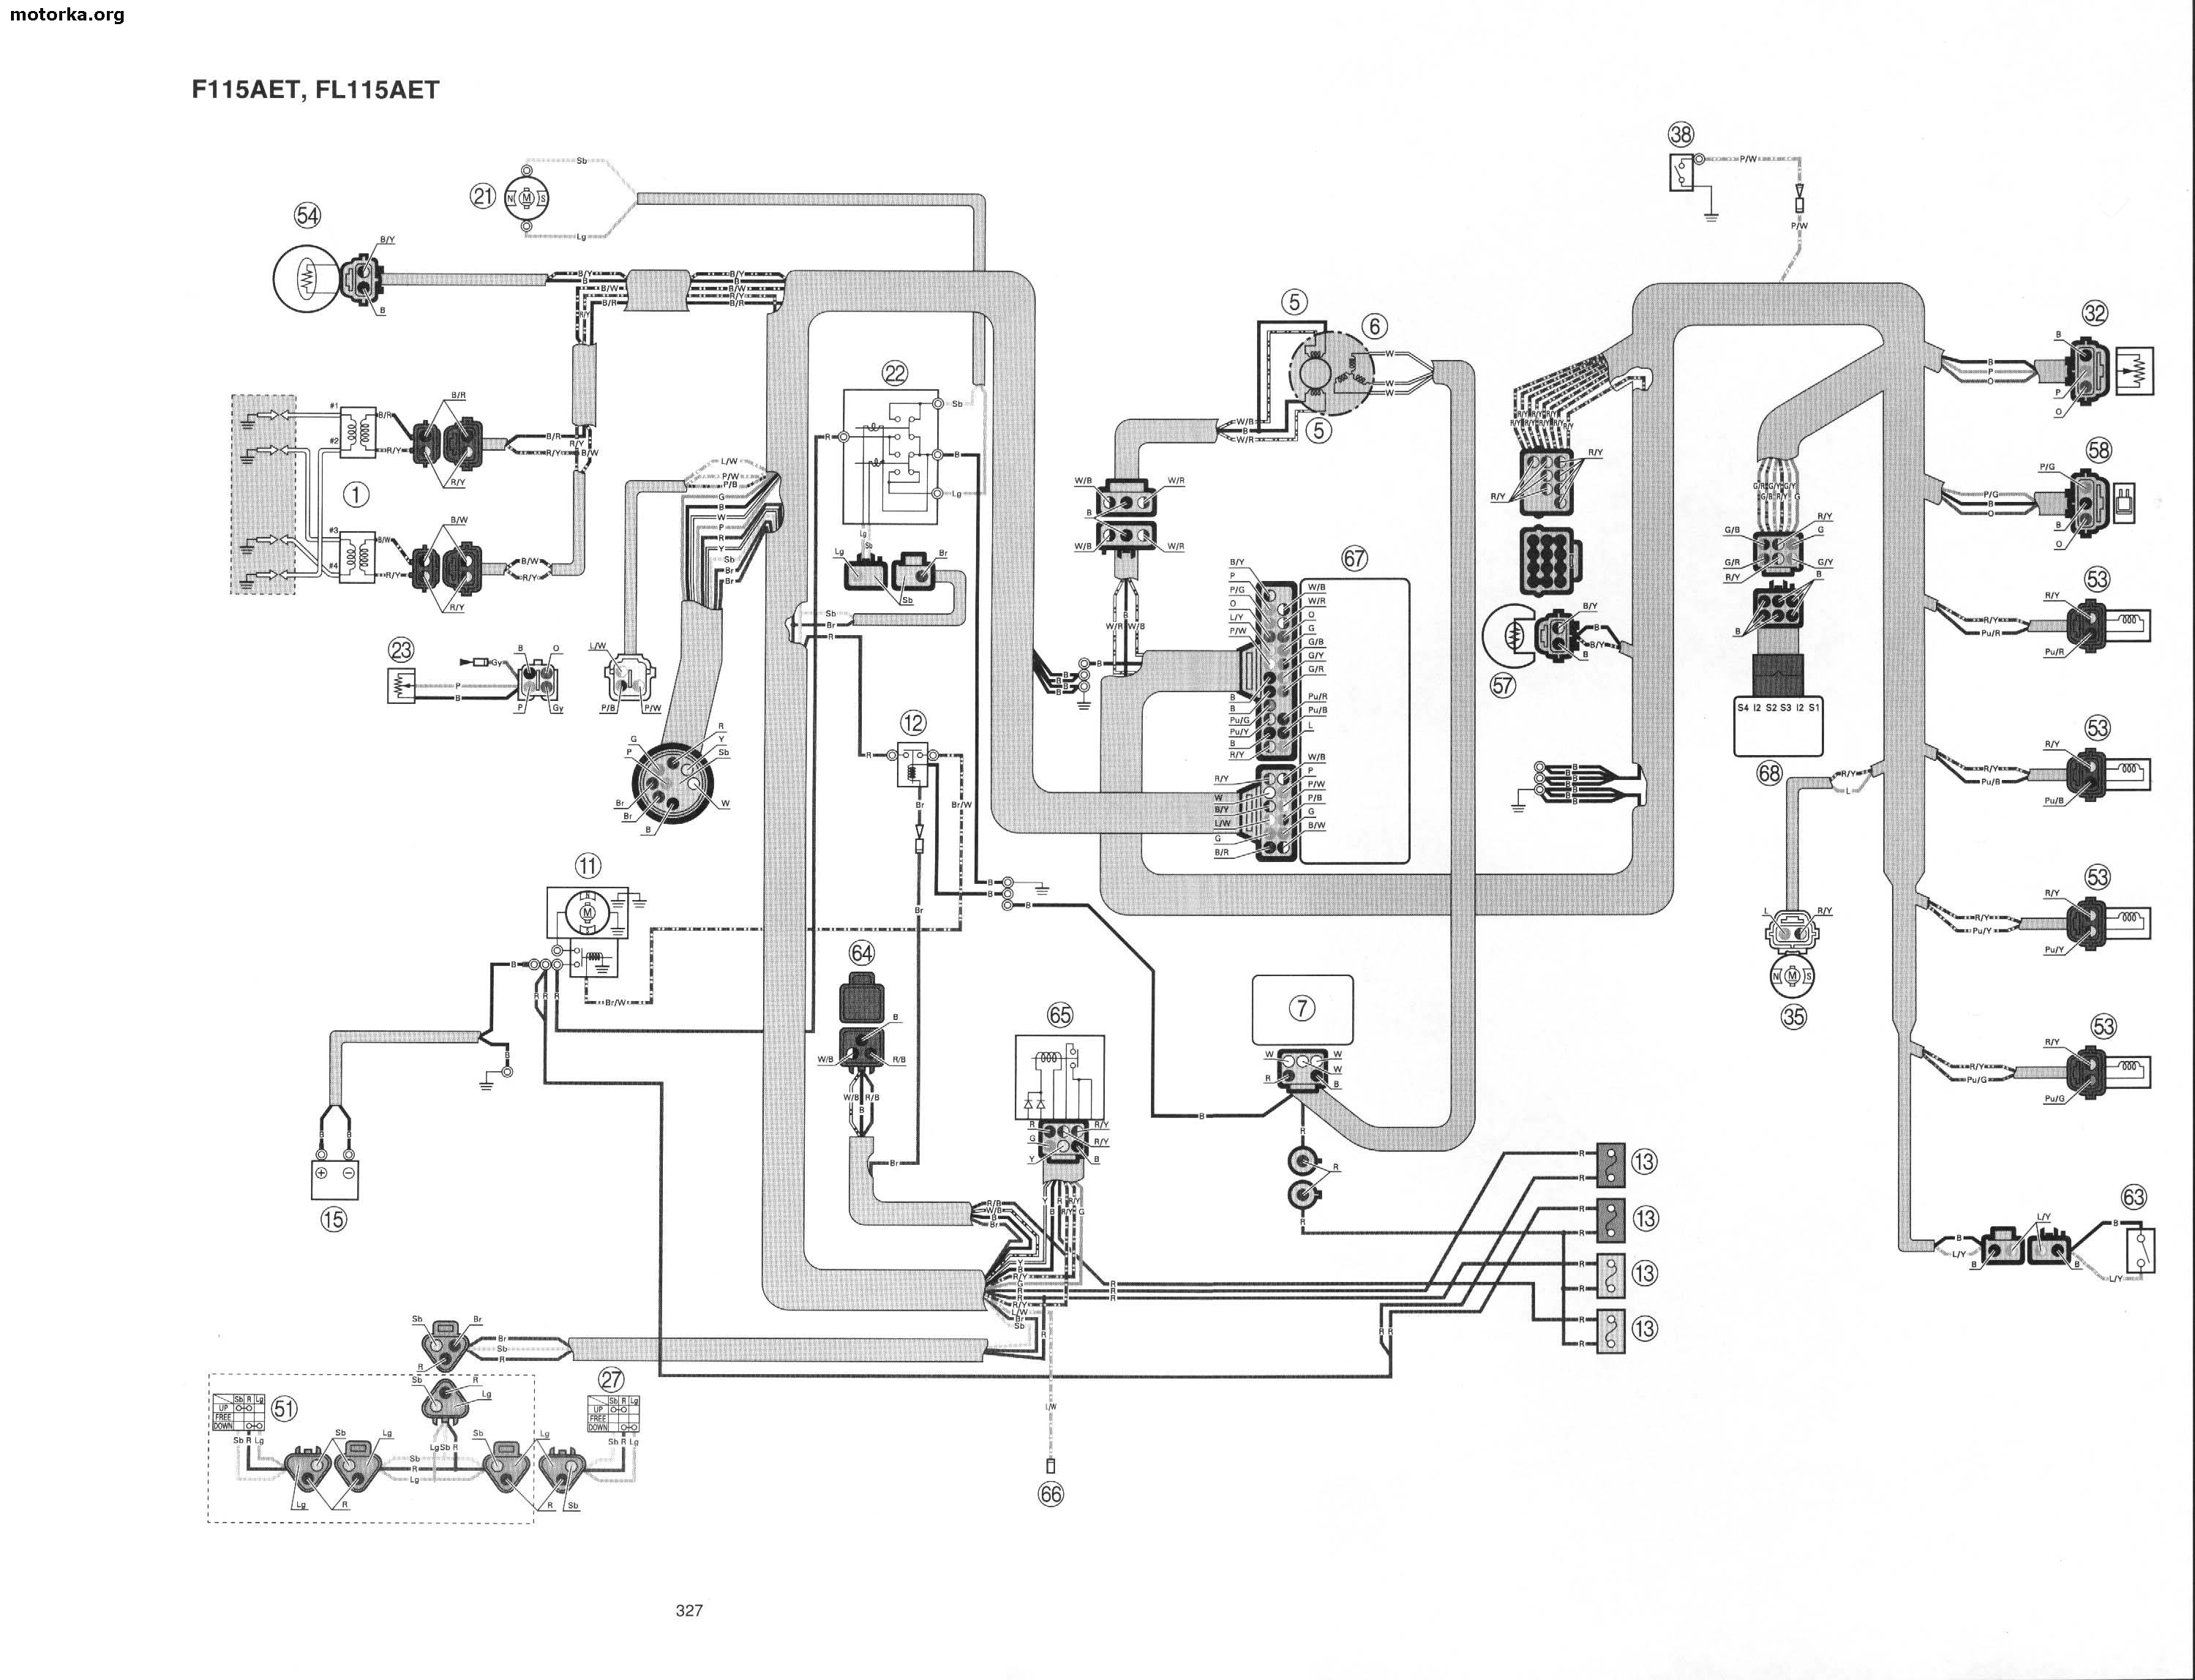 Yamaha 115 Outboard Wiring Diagram